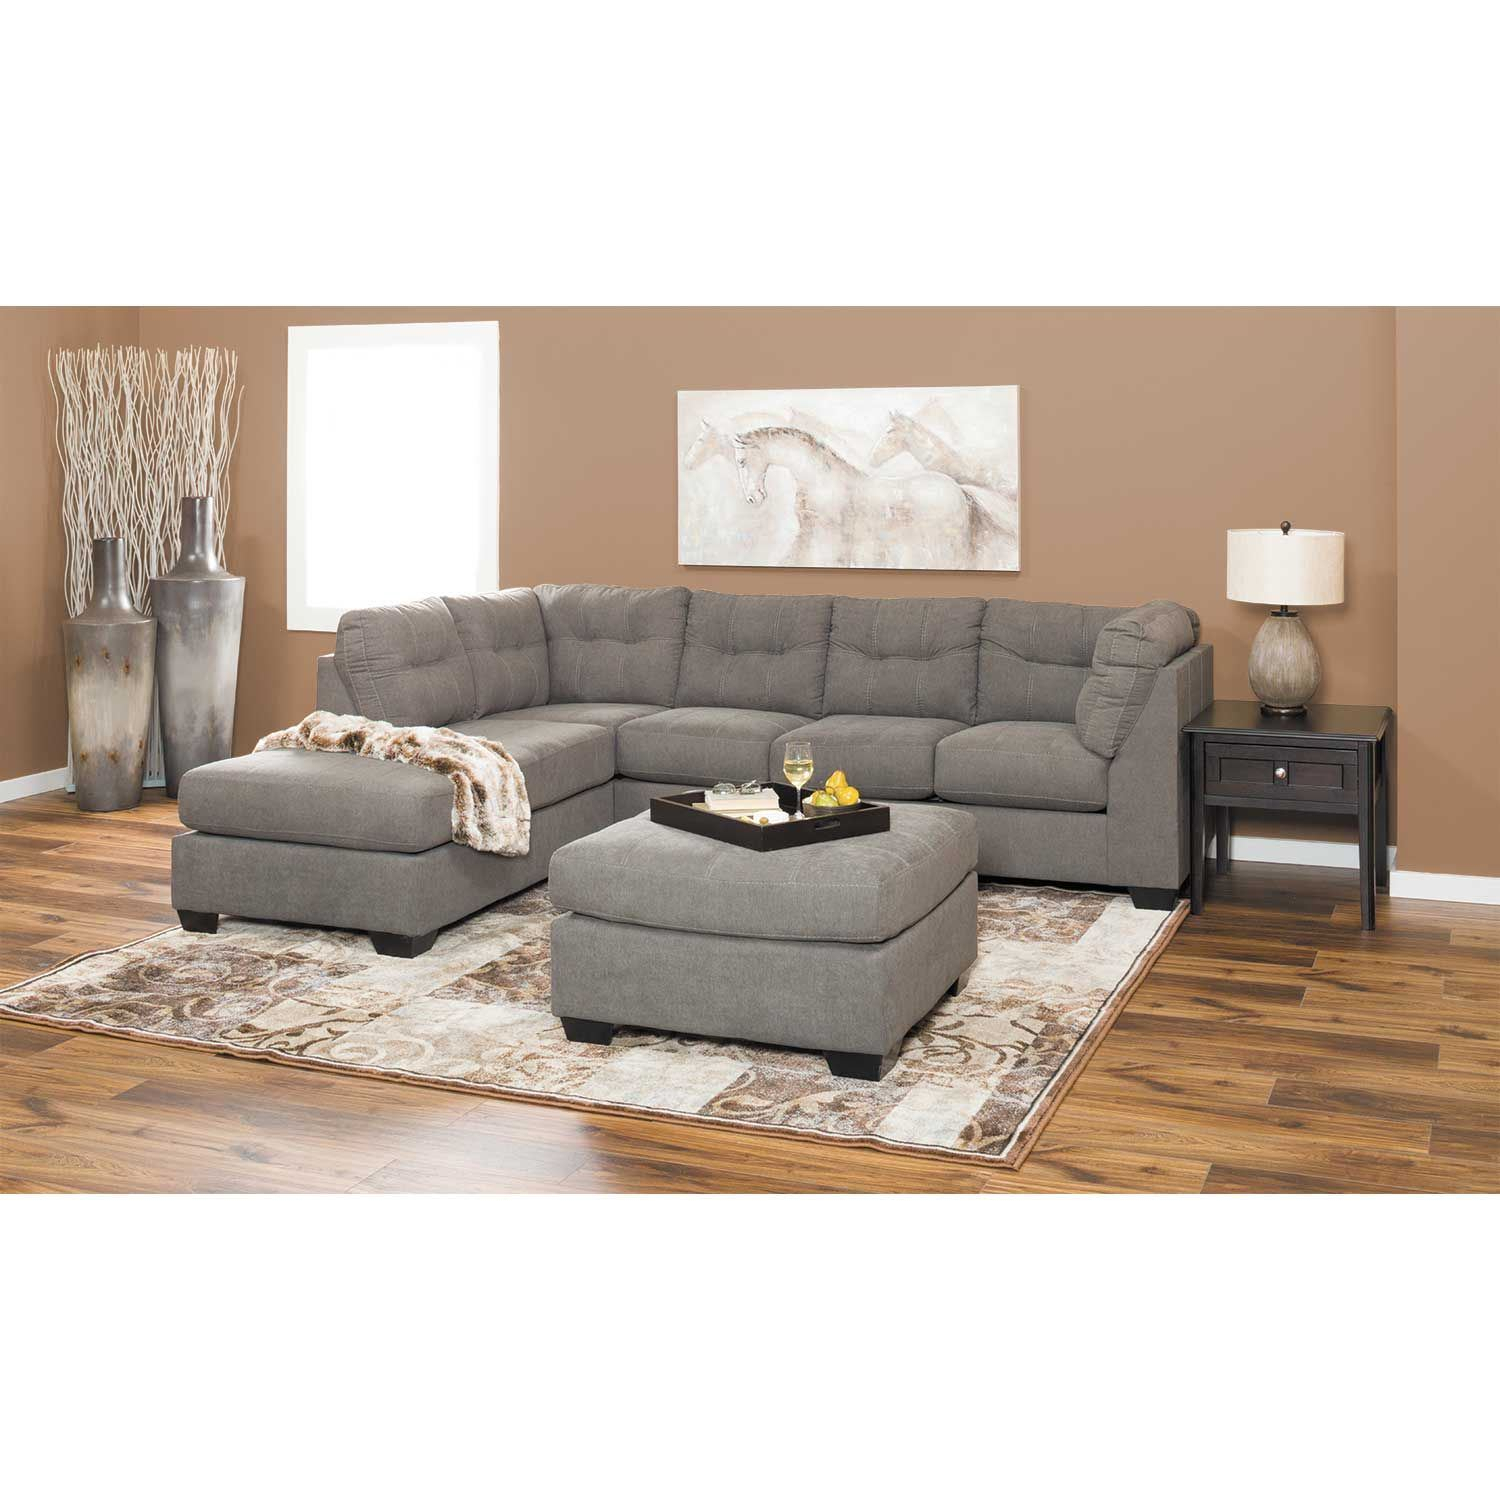 Maier Charcoal 2 Piece Sectional With Laf Chaise 4520016 With Delano 2 Piece Sectionals With Laf Oversized Chaise (View 2 of 15)